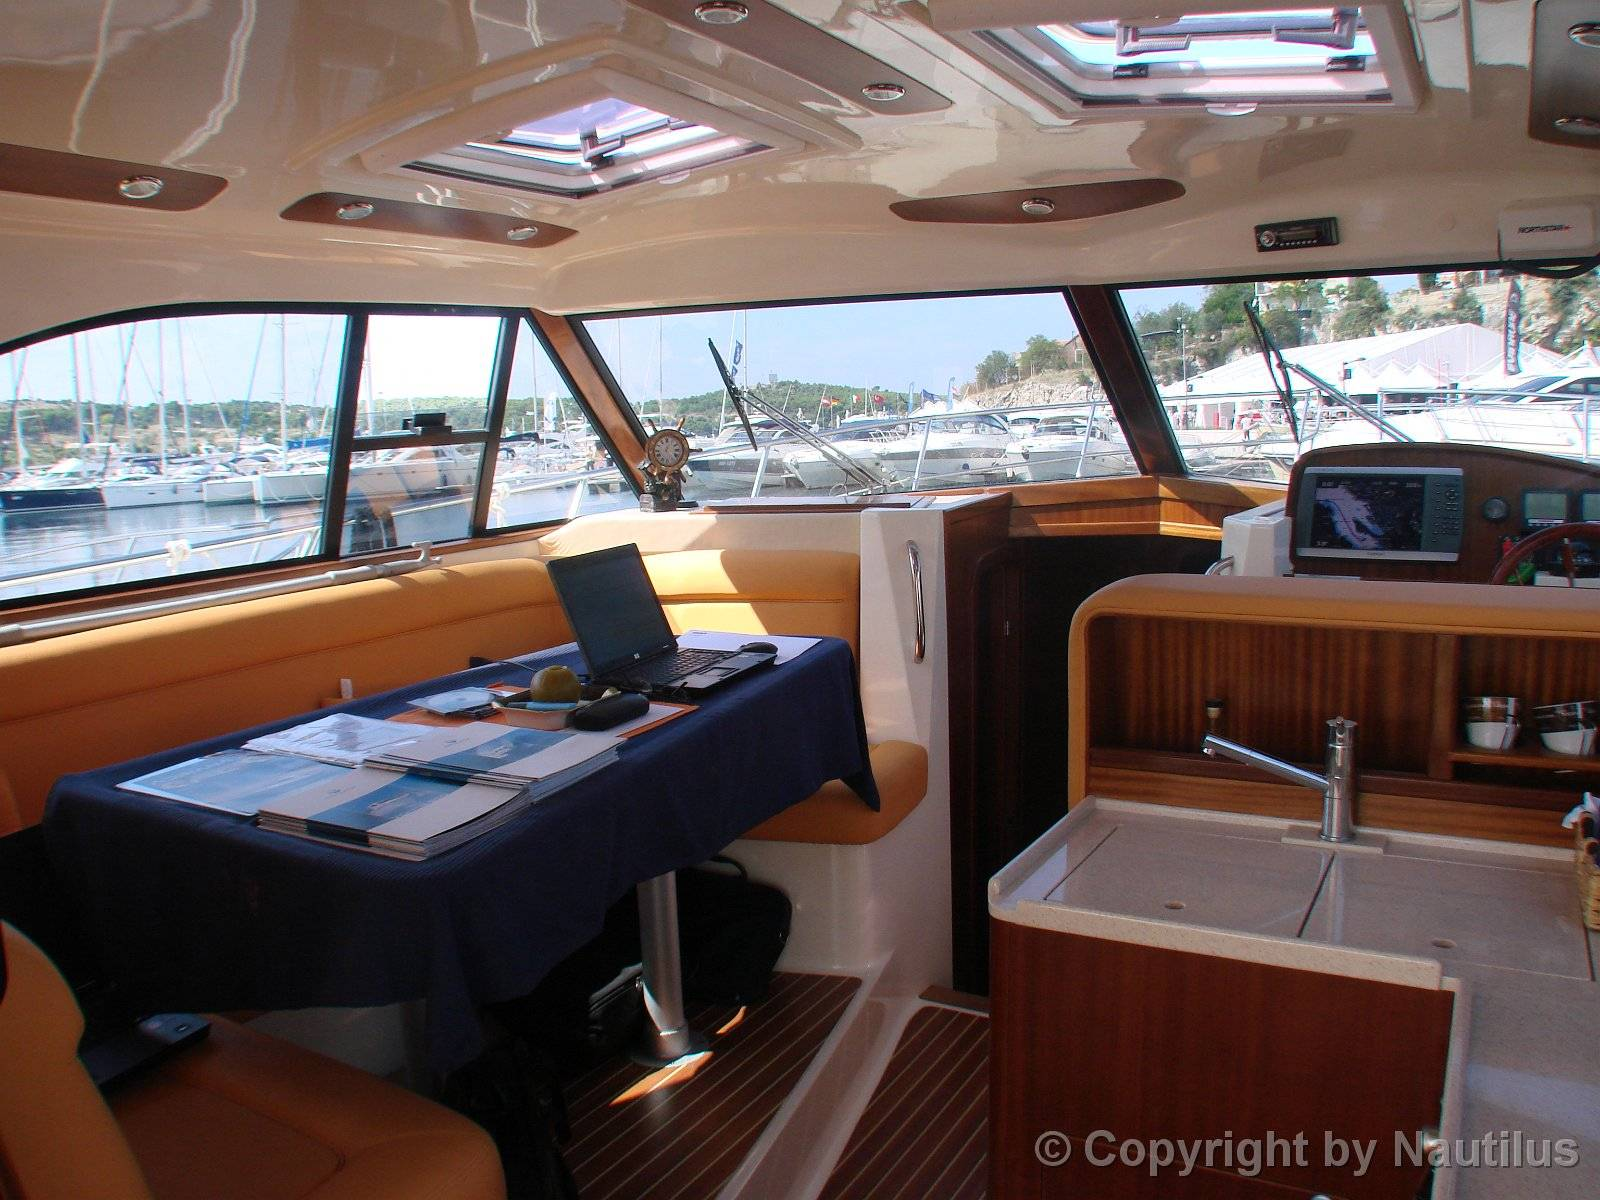 Rent a boat, Adriana 44, table in saloon